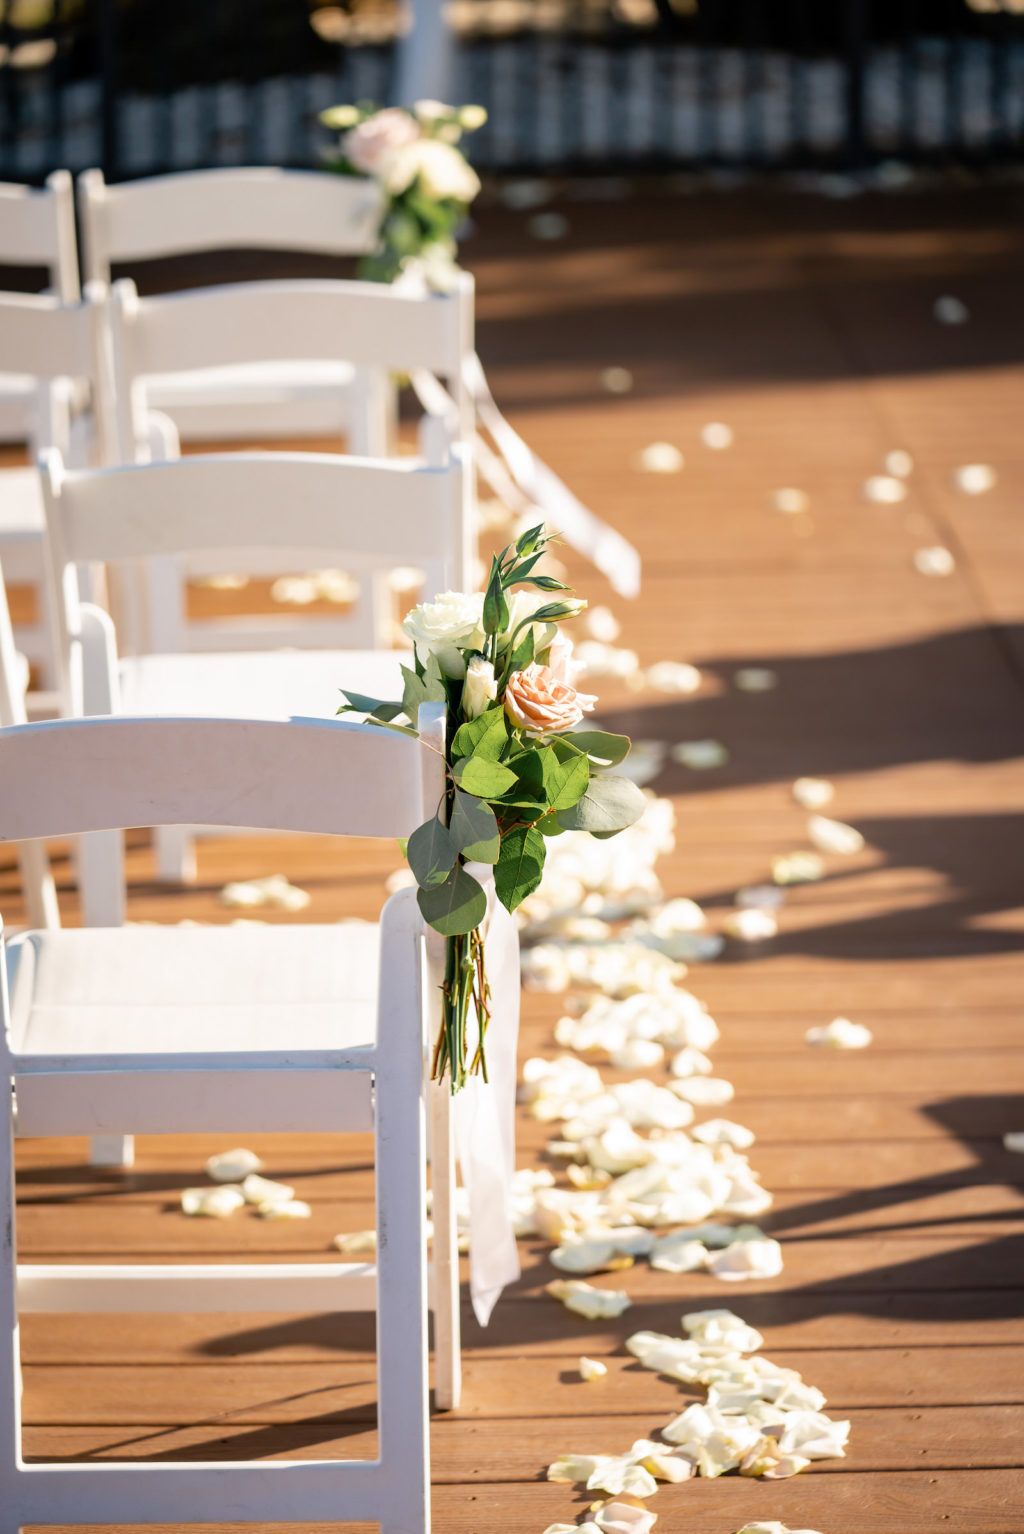 Mauve and Ivory Rose with Greenery Small Floral Arrangement on Folding White Chair for Wedding Ceremony Decor, White Flower Petals | Tampa Bay Wedding Florist Iza's Flowers